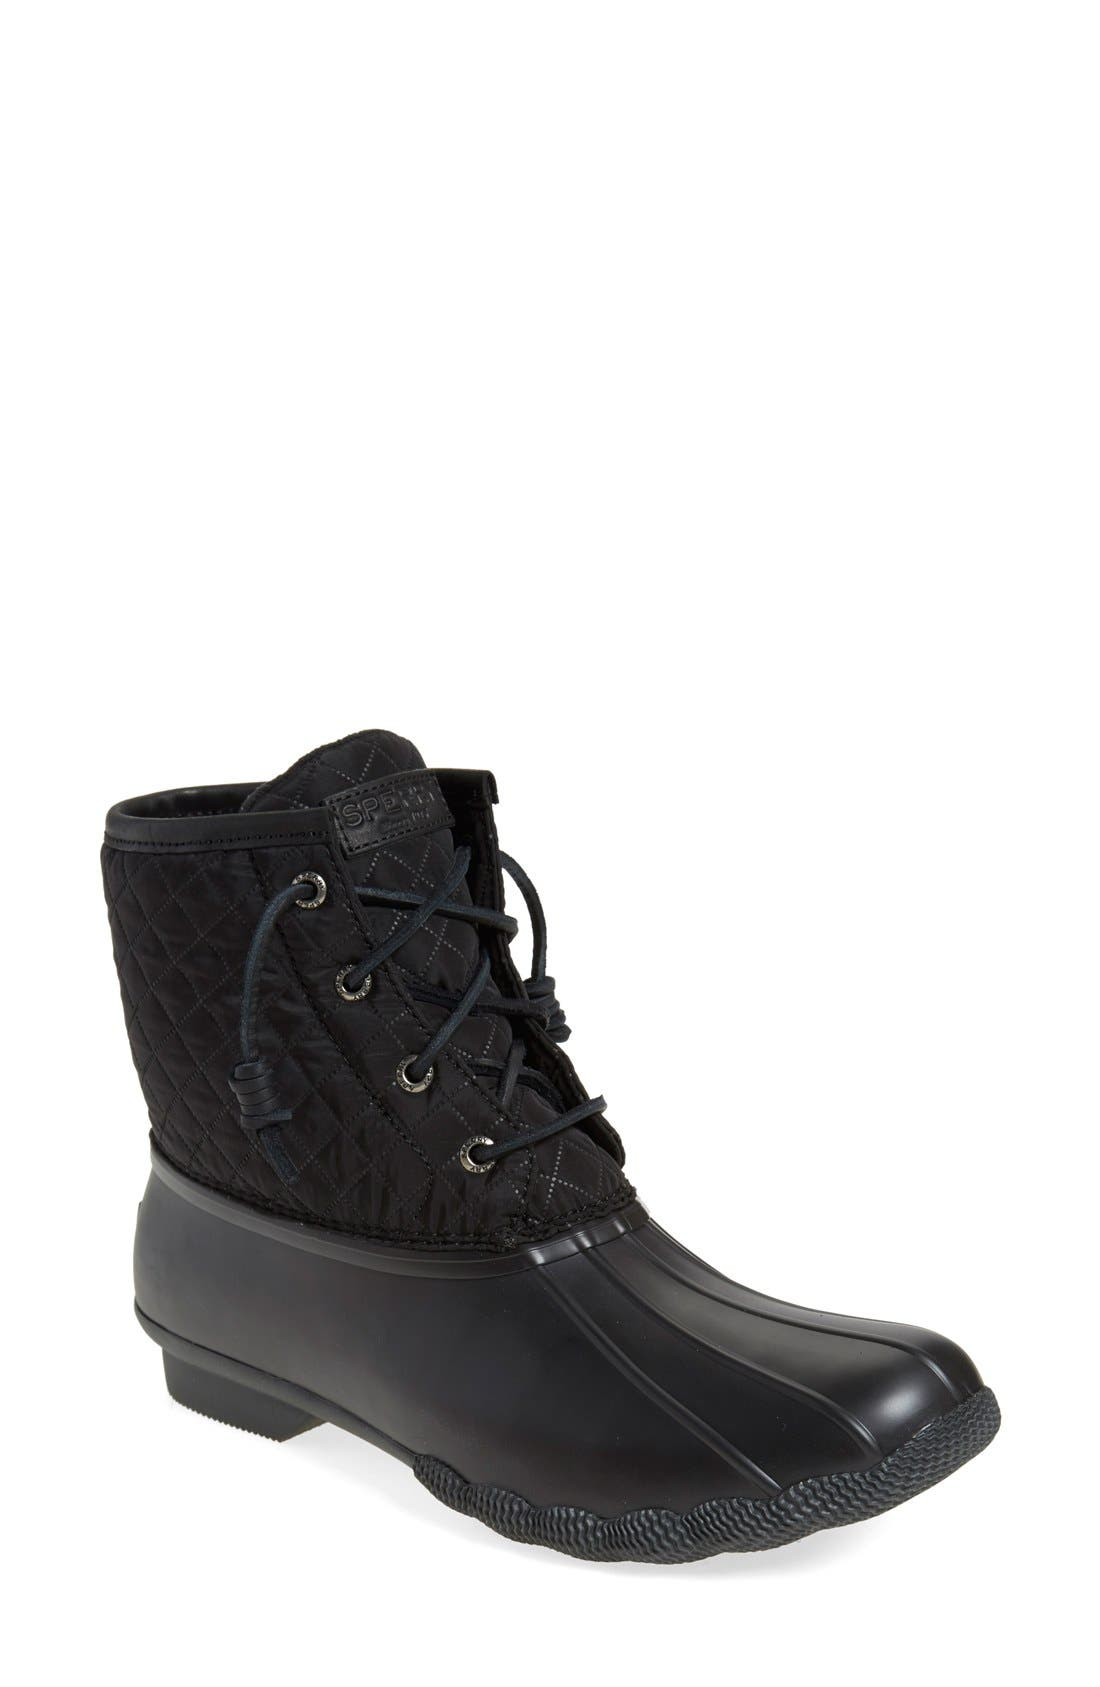 Alternate Image 1 Selected - Sperry 'Saltwater - Quilted' Duck Boot (Women)